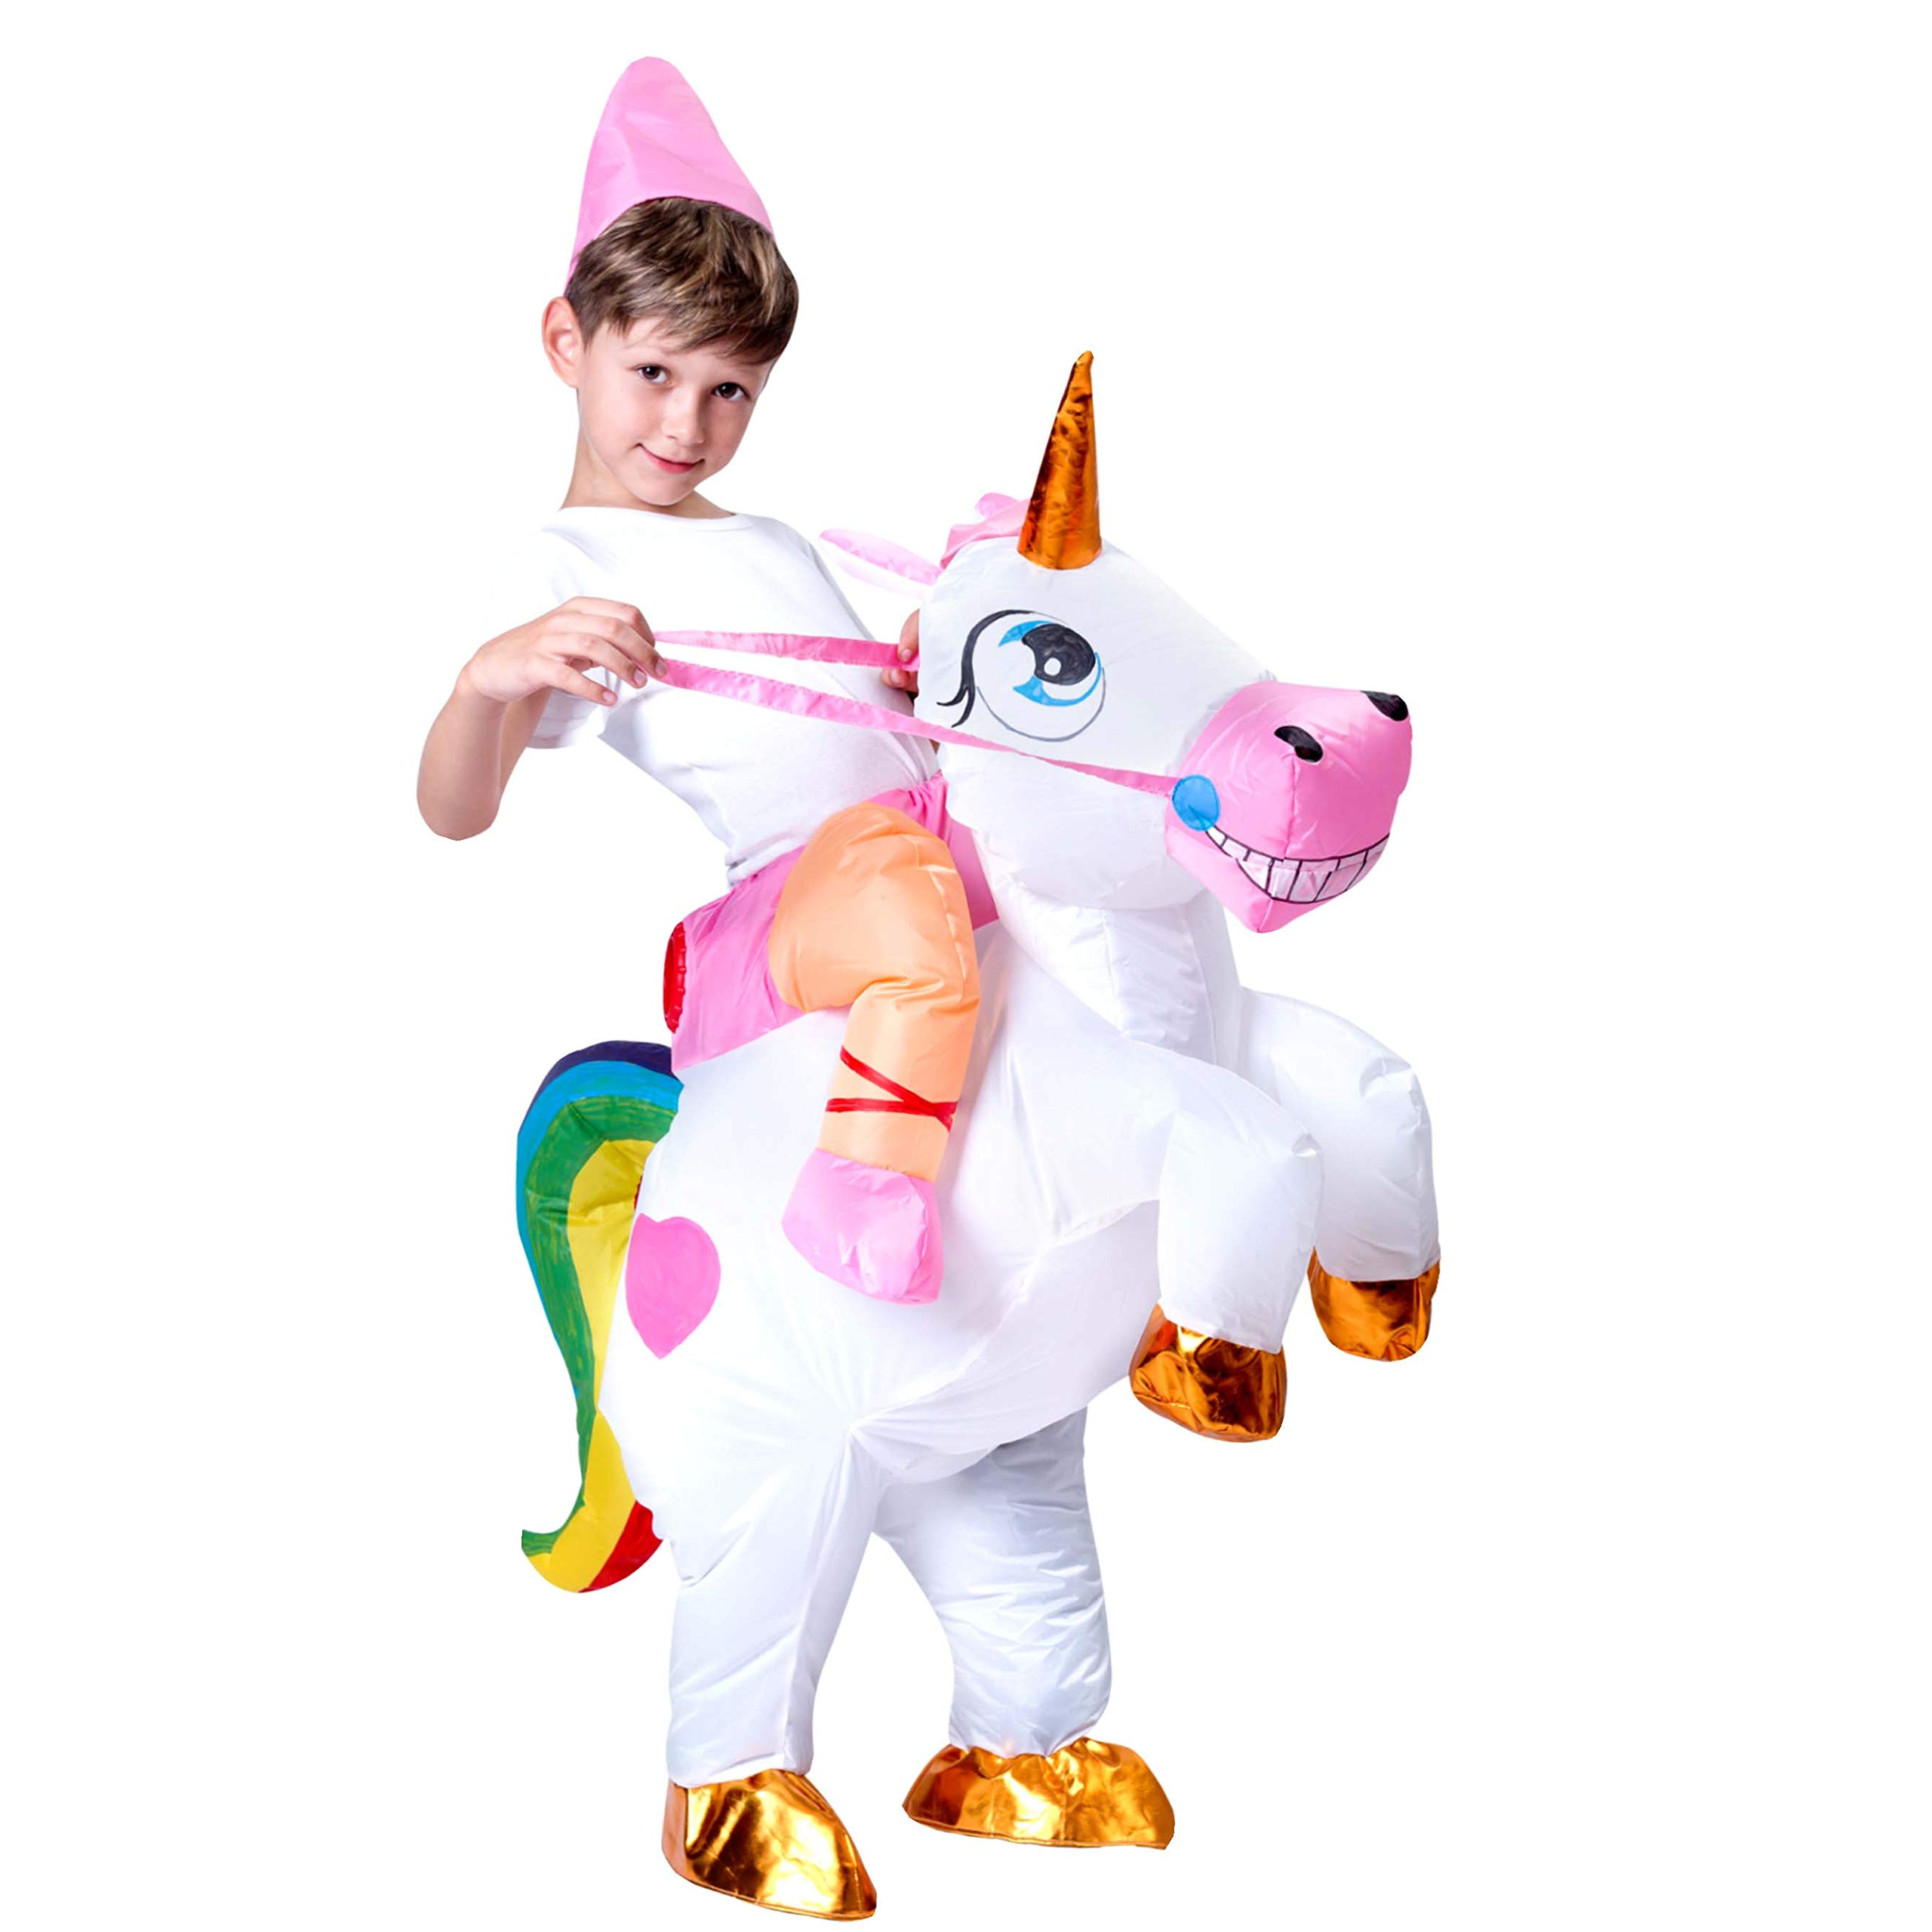 Spooktacular Creations Inflatable Riding a Unicorn Air Blow-up Deluxe Costume - Child One Size Fits 4-8yr (42''-51'' Height)